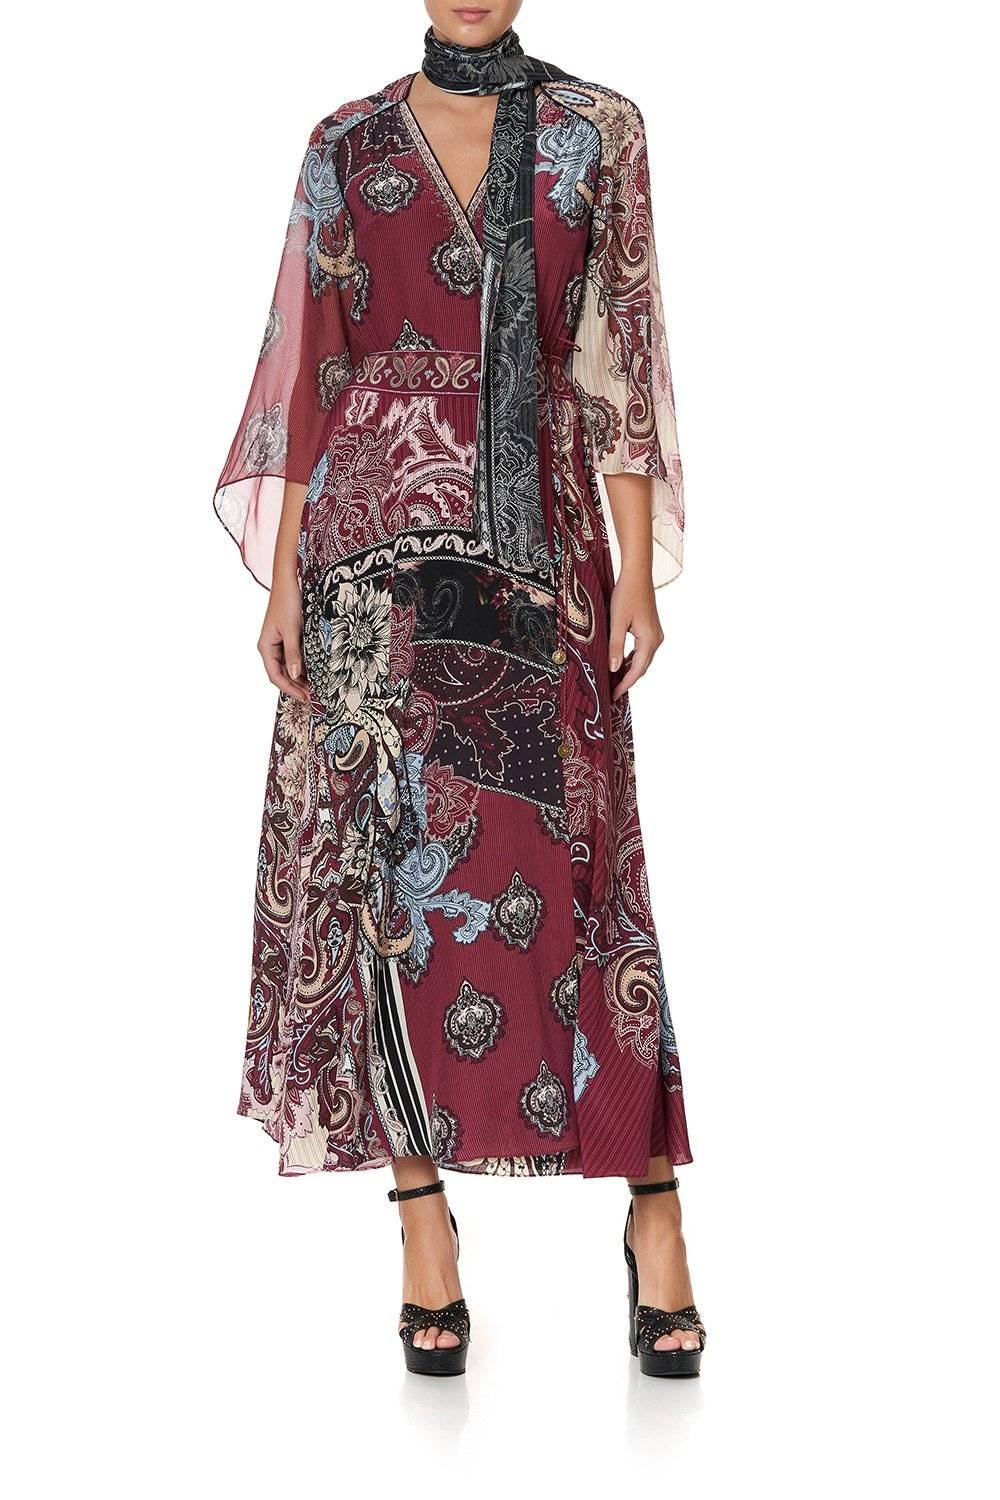 SPELL PRINCESS TALE OF A FIREBIRD WRAP DRESS WITH TIE